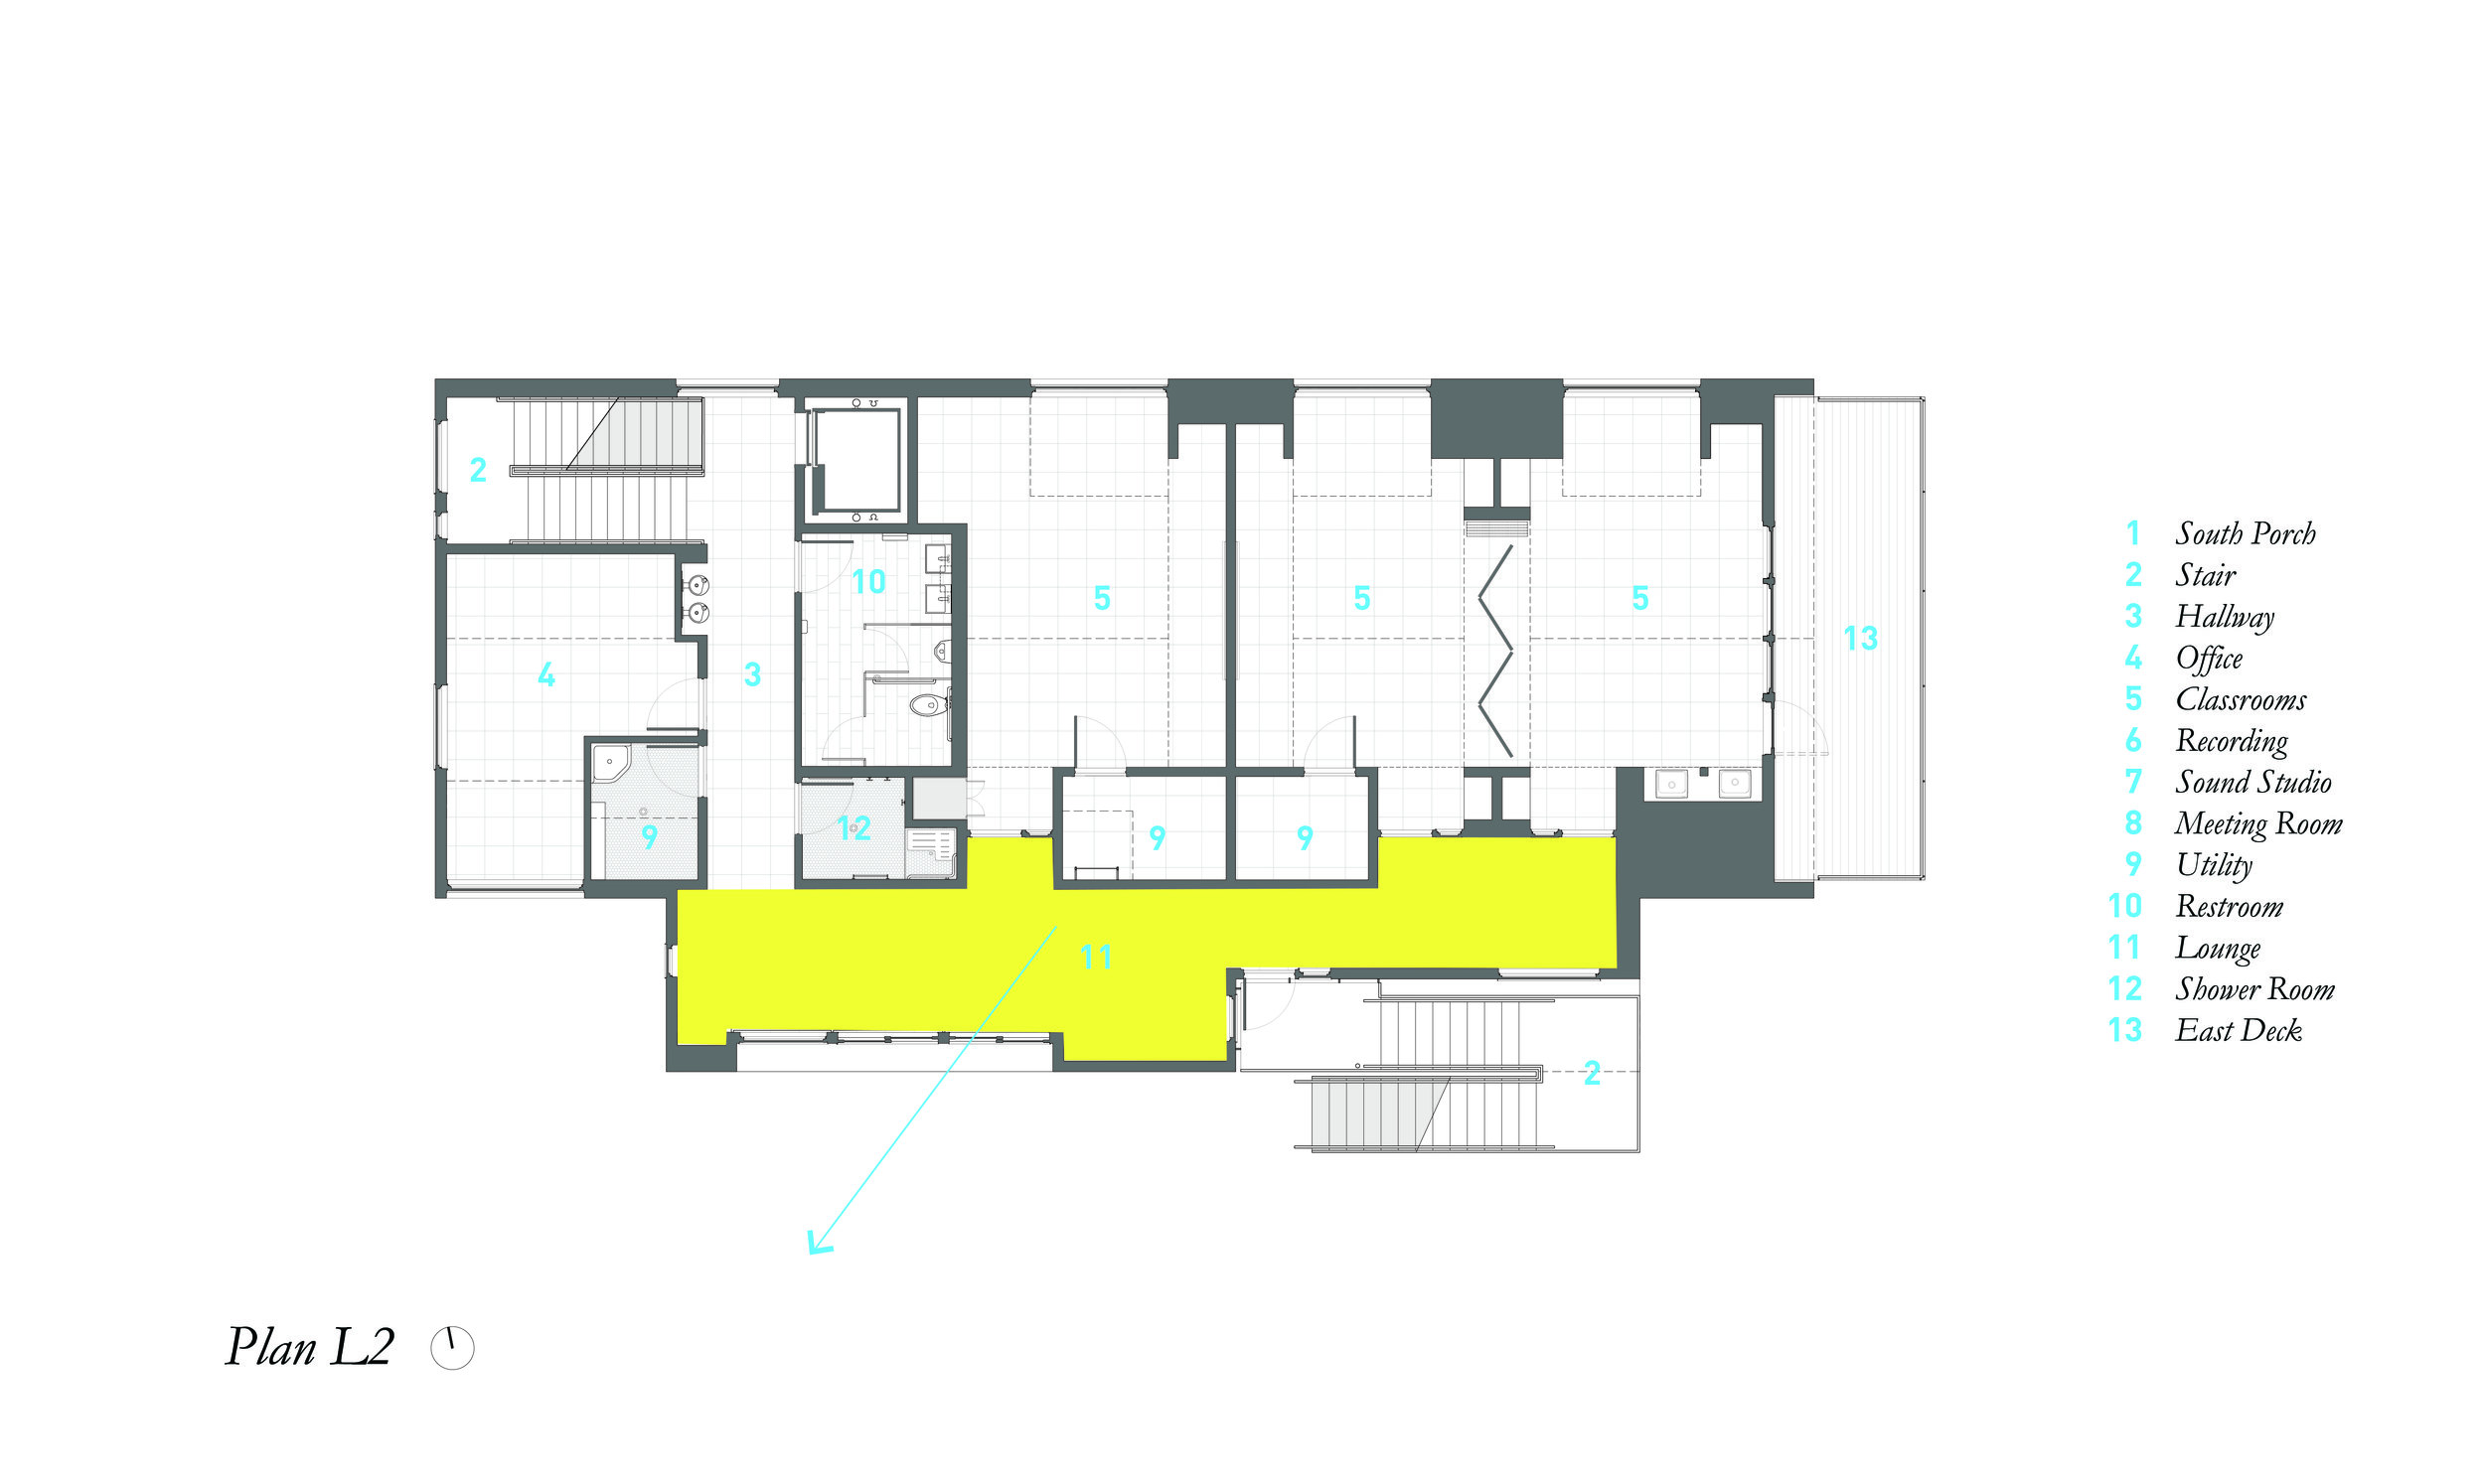 Second Floor Plan showing wide Hallway/Lounge Area